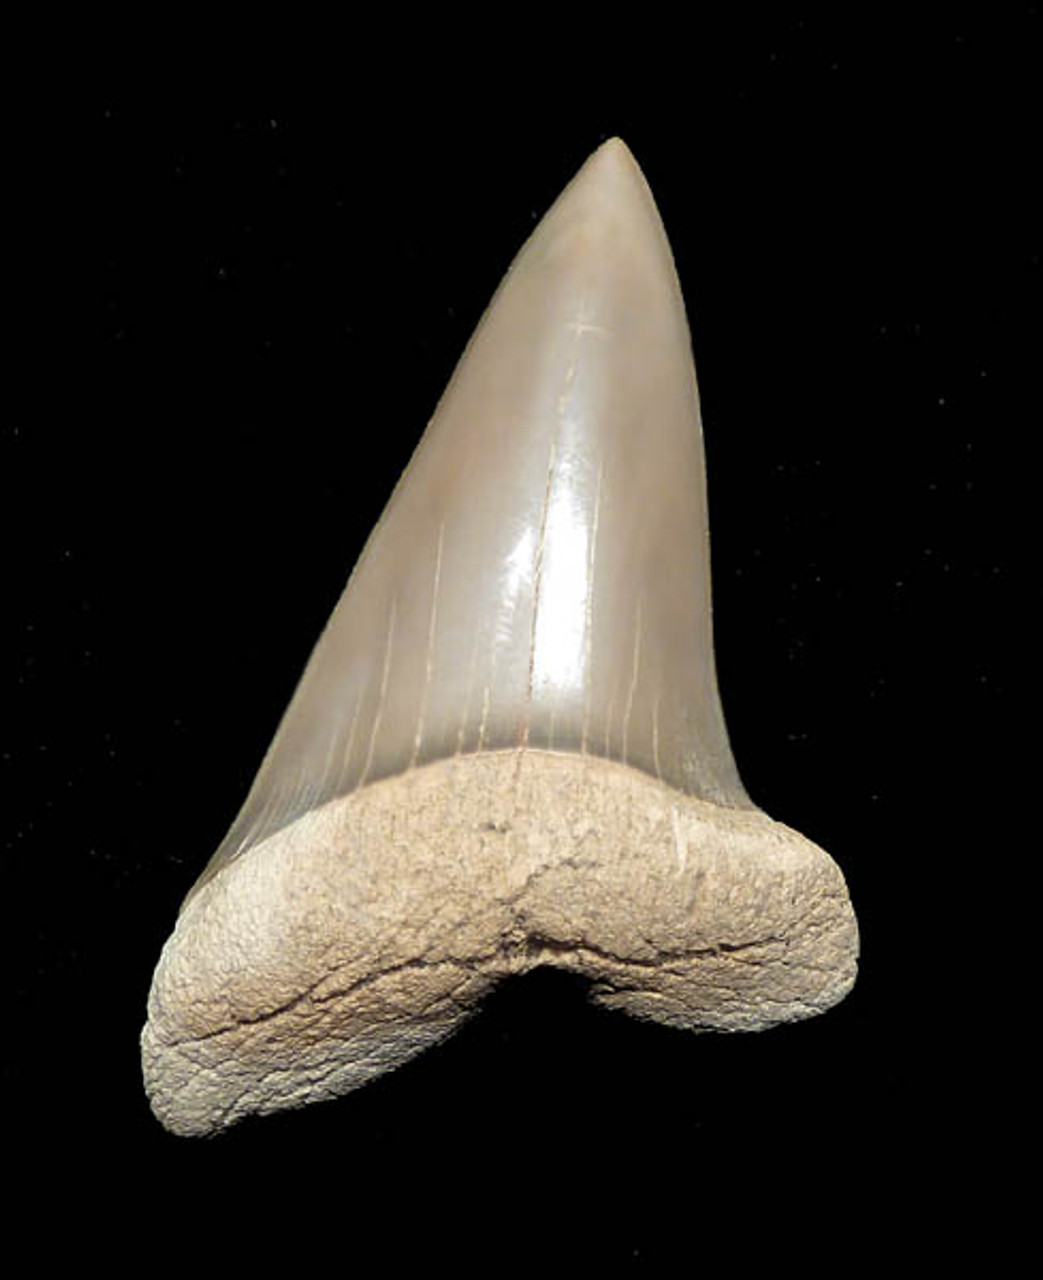 SHLX1 - 2.2 INCH EXTINCT SHARK COSMOPOLITODUS  XIPHODON ( WHITE SHARK ) FOSSIL TOOTH FROM LEE CREEK